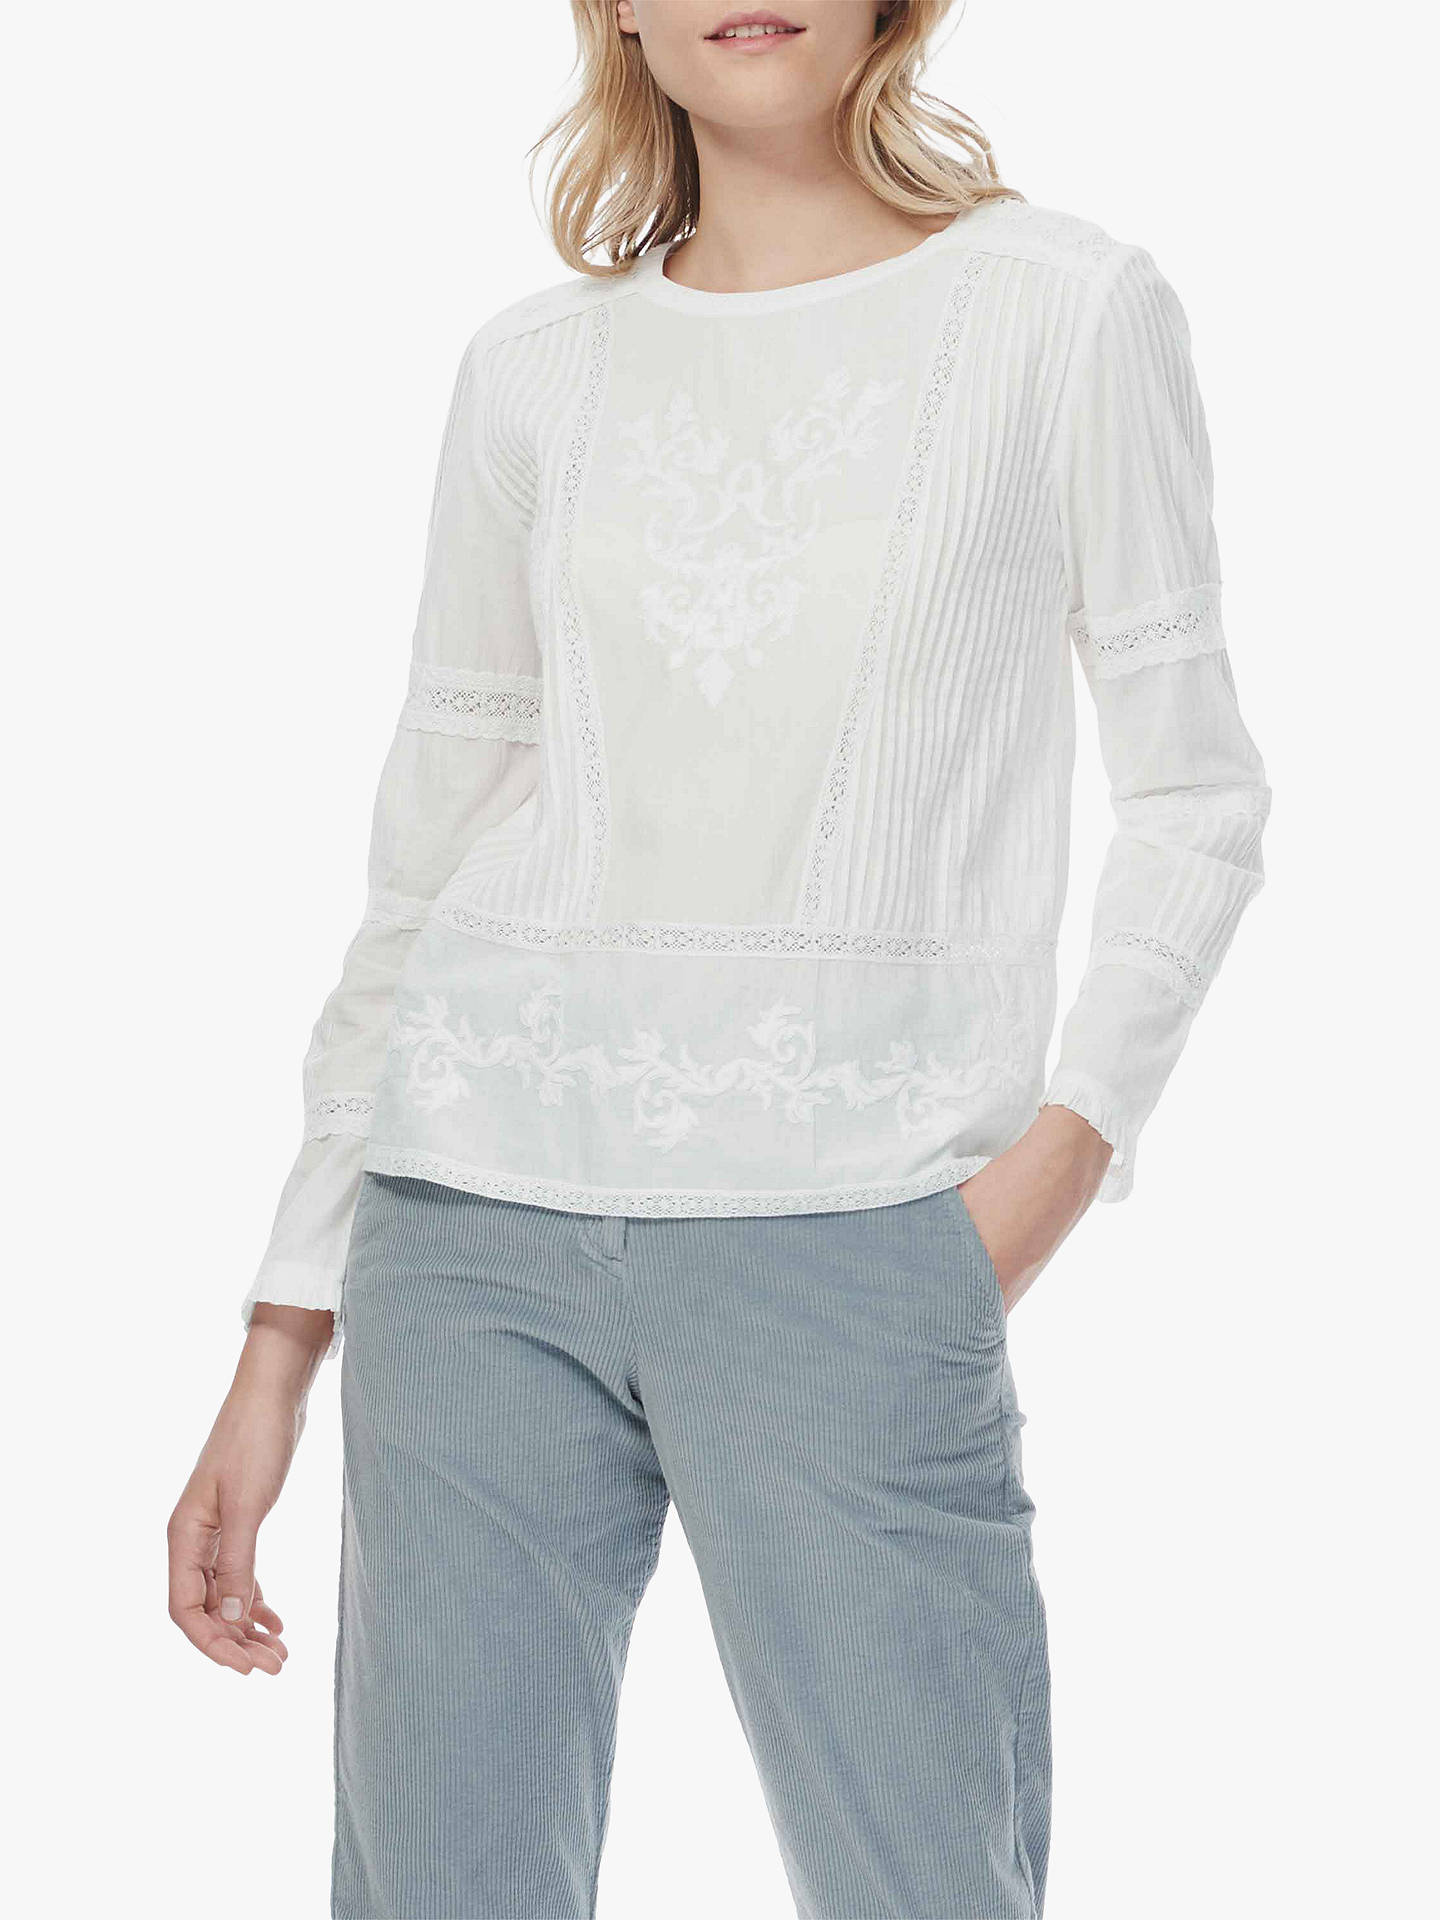 BuyBrora Lace Cotton Blouse, White, 6 Online at johnlewis.com